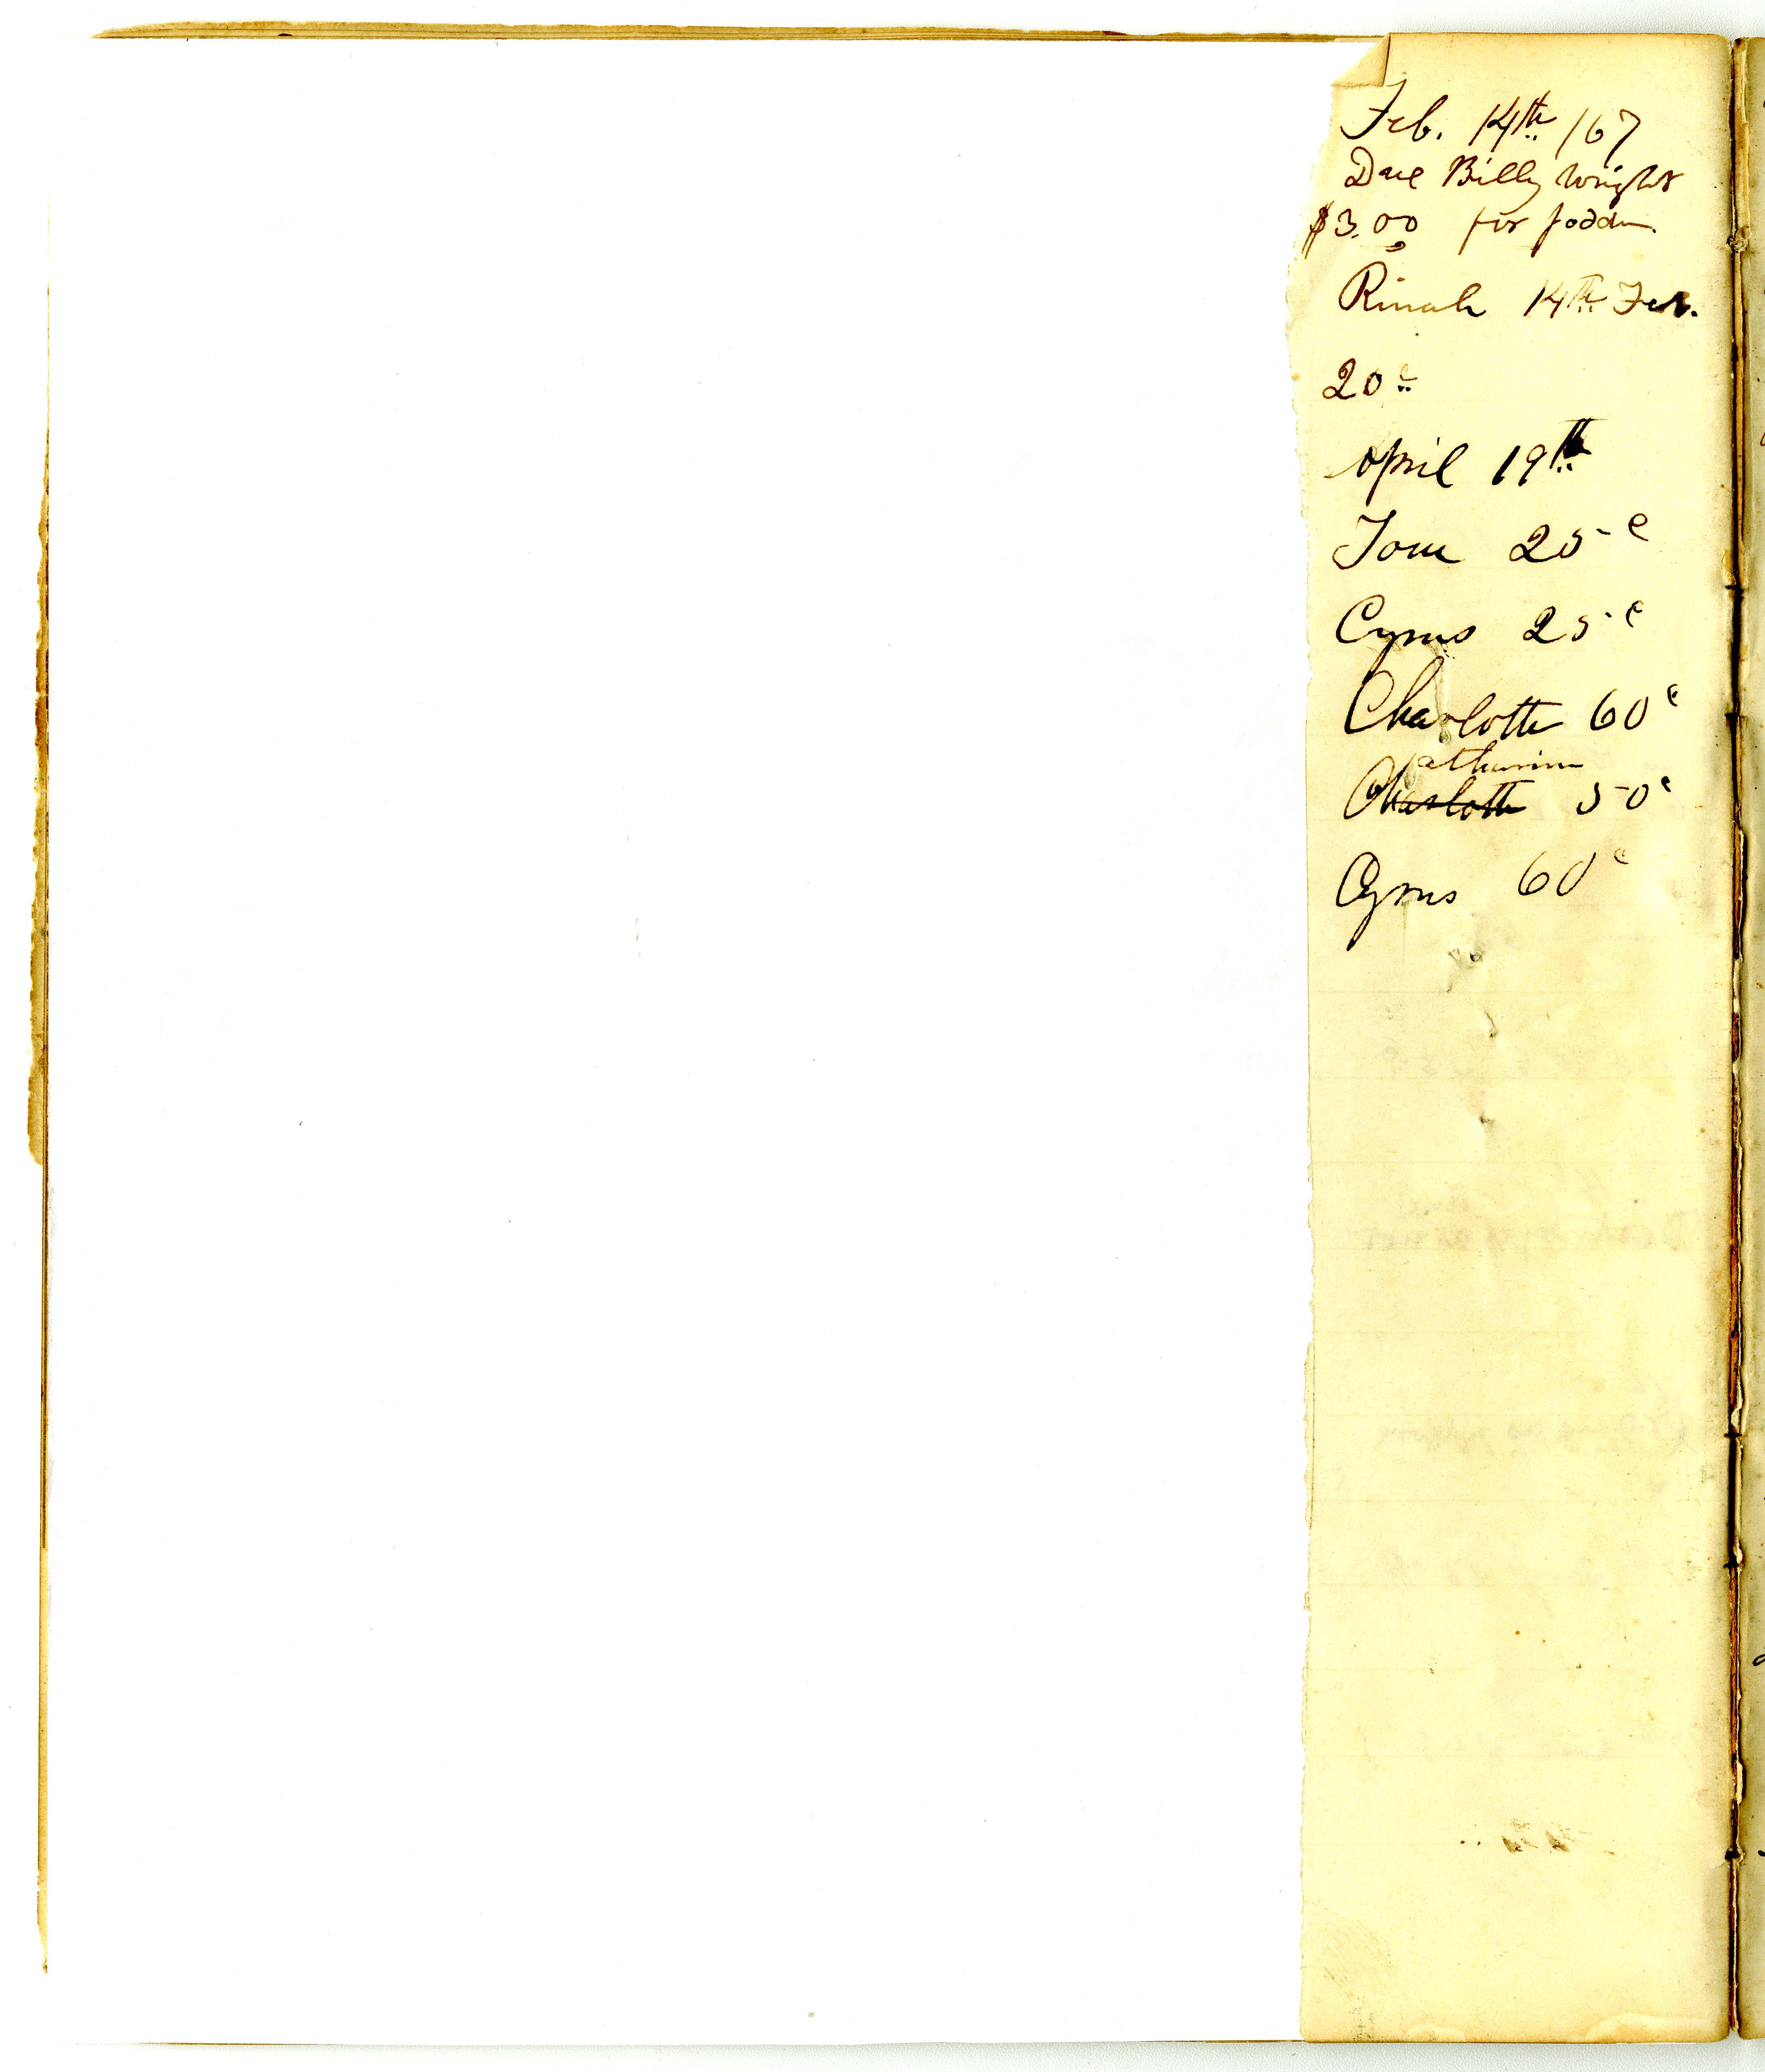 R.L. Johnson Medical Journal, Page 230